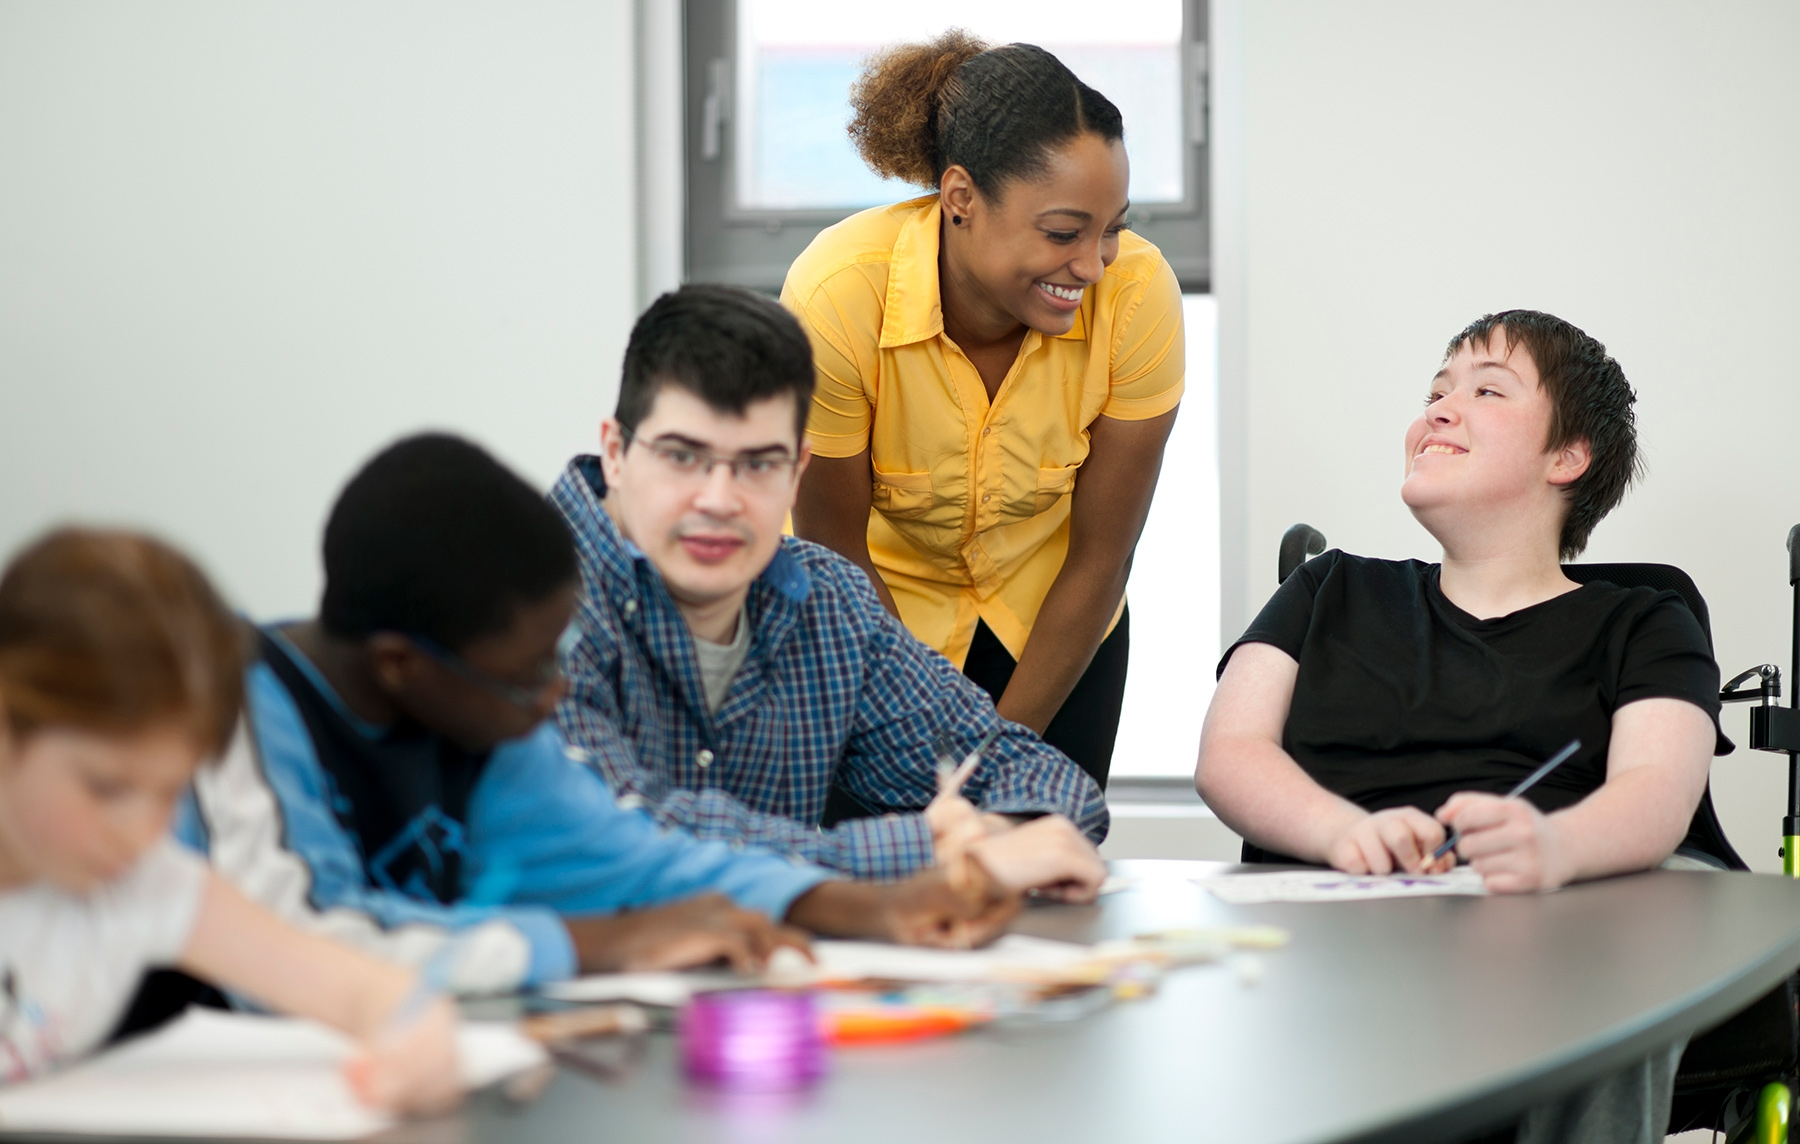 Course-Integrated Learning - Student working in the community with disabled youth